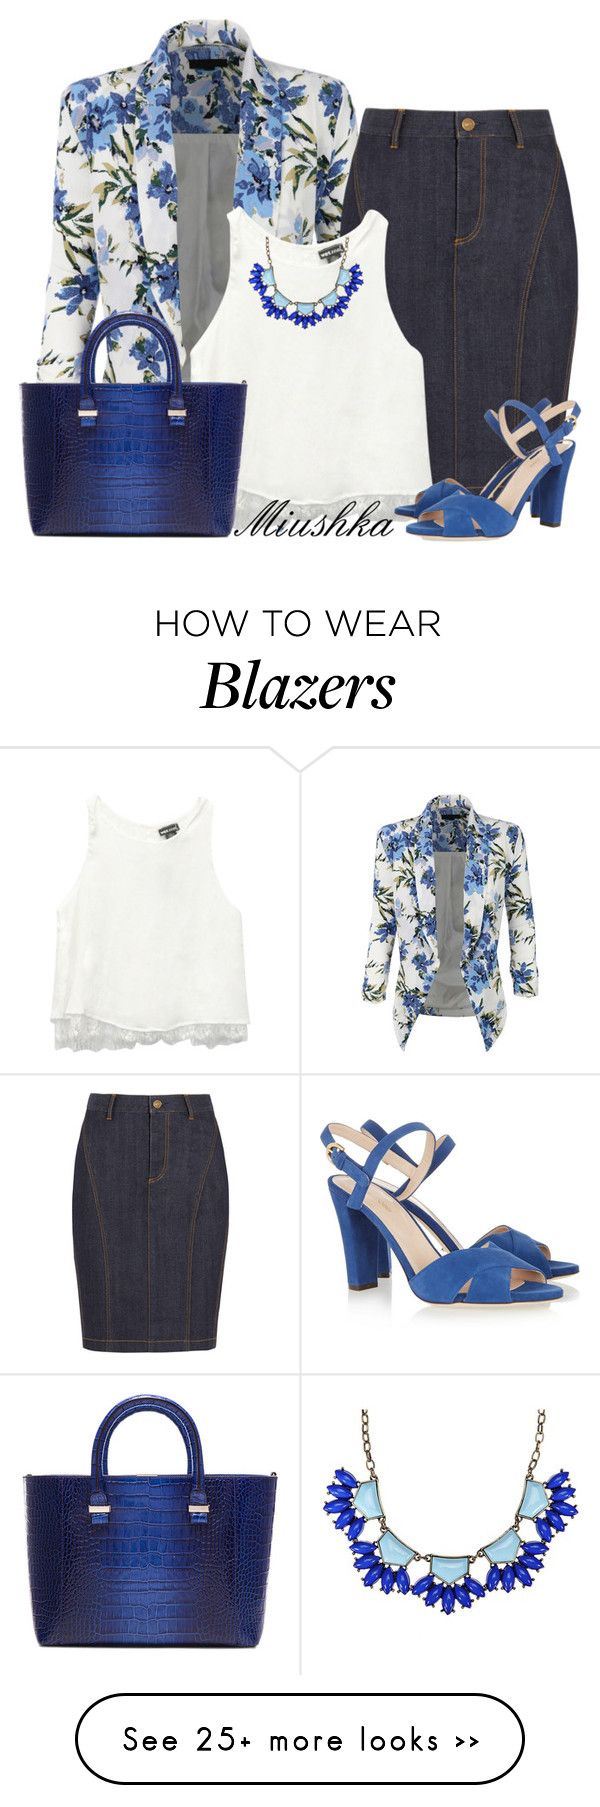 """Denim Skirt & Blazer"" by miushka on Polyvore featuring LE3NO, Burberry, Wet Seal, Sergio Rossi and Victoria Beckham"